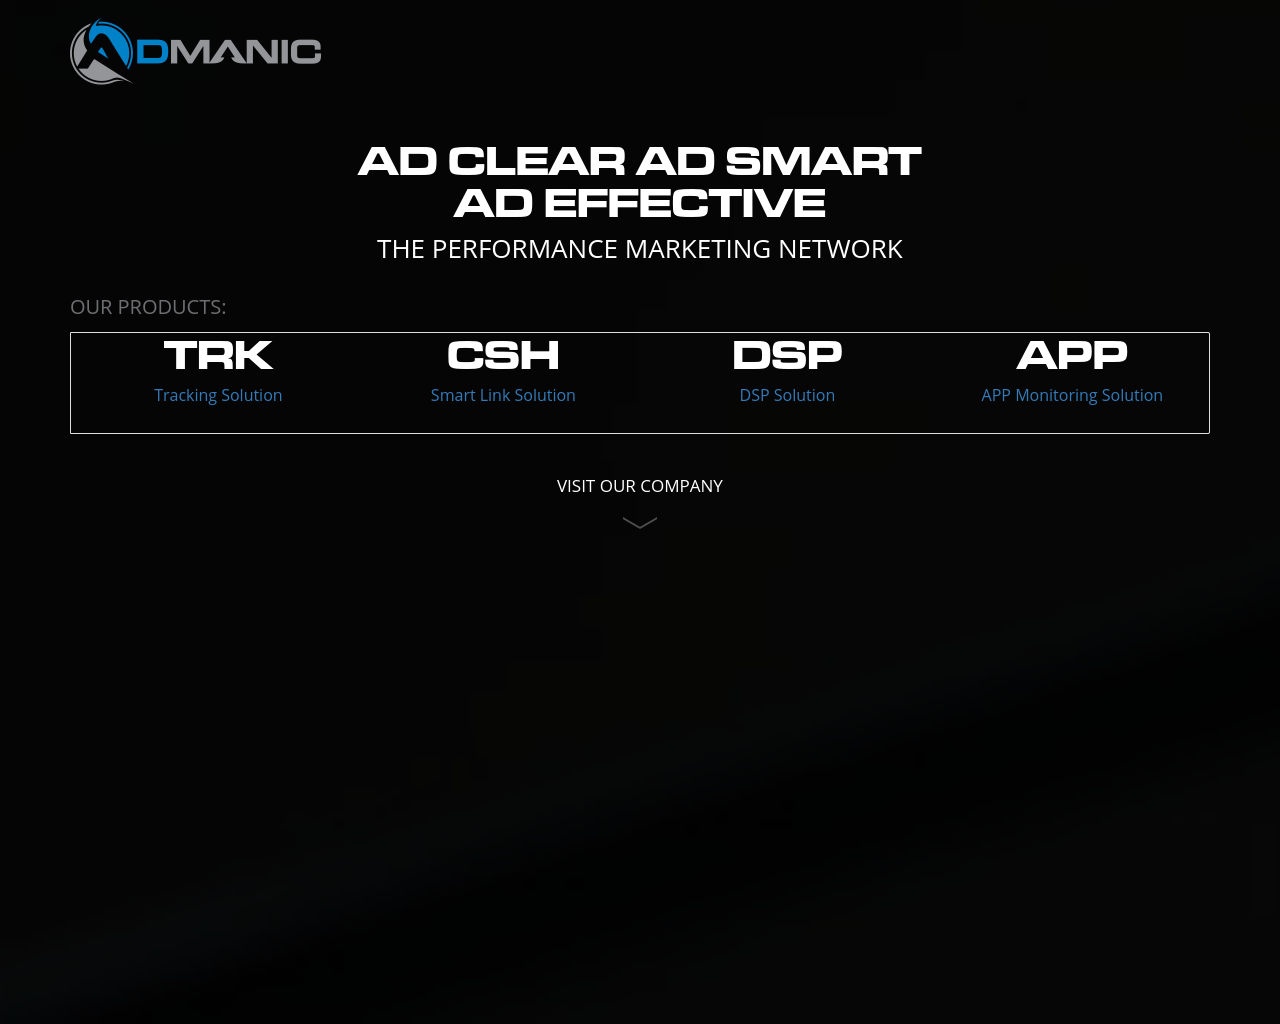 ADMANIC-Advertising-Reviews-Pricing